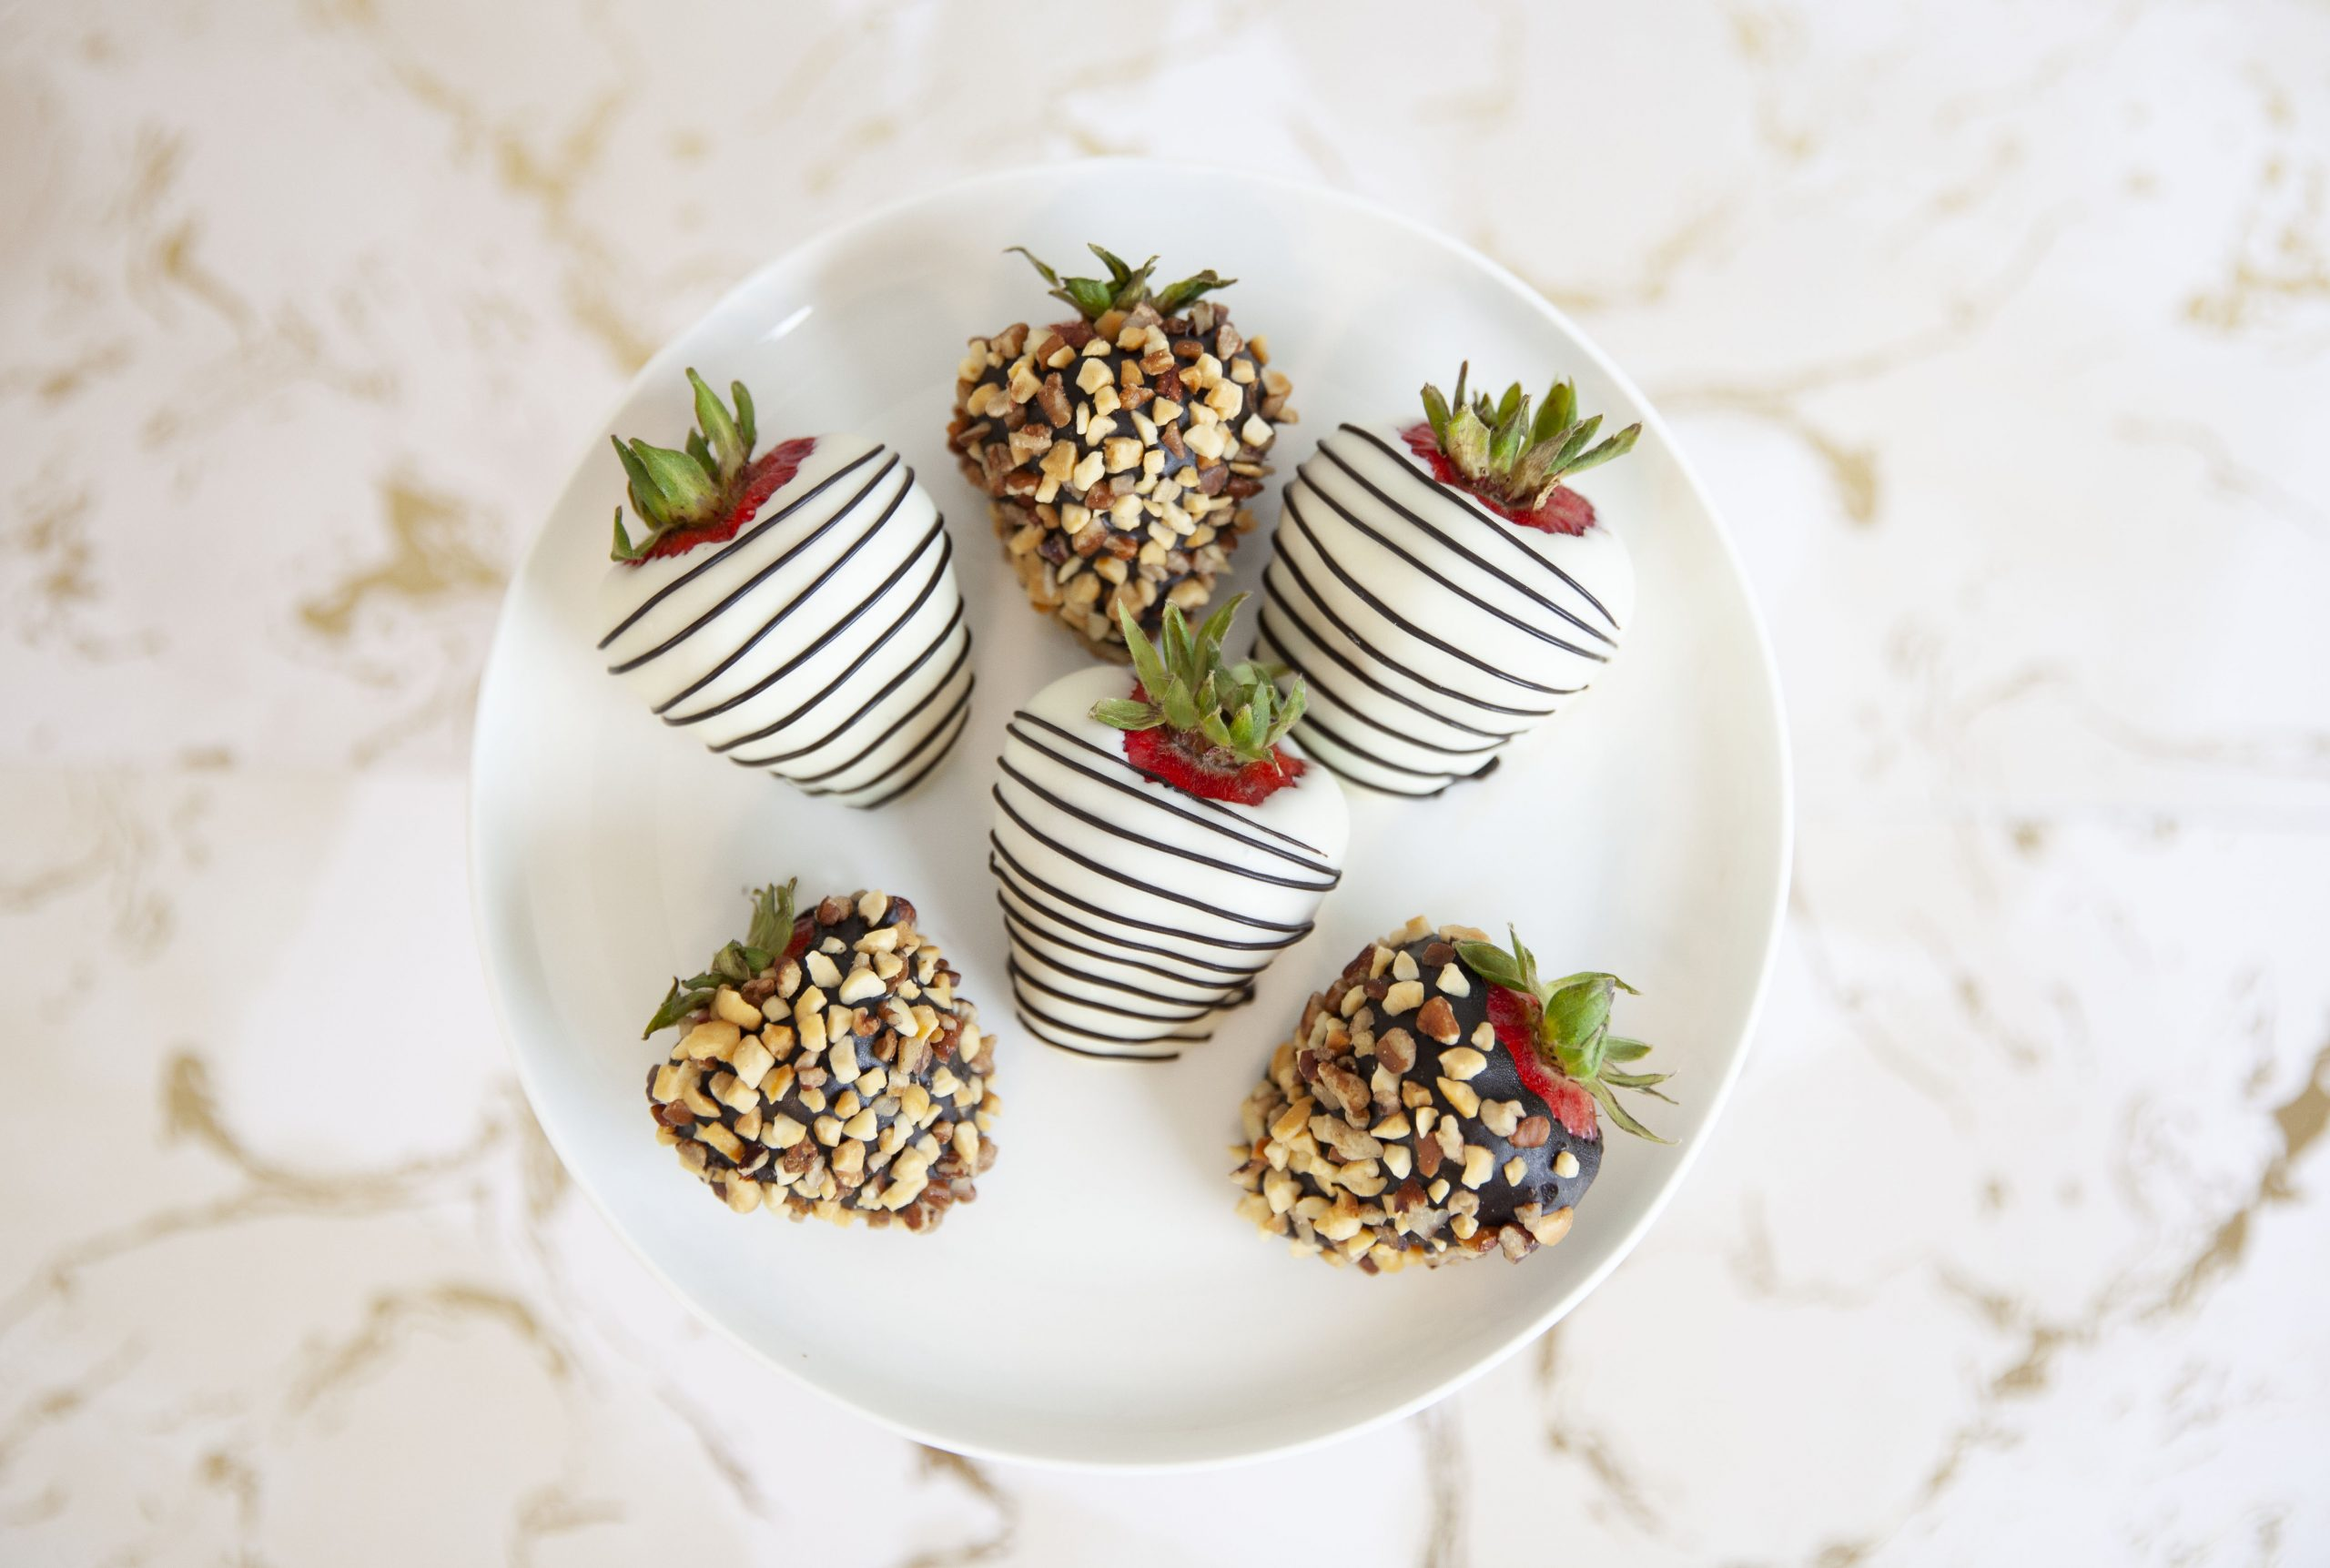 Strawberry with peanuts